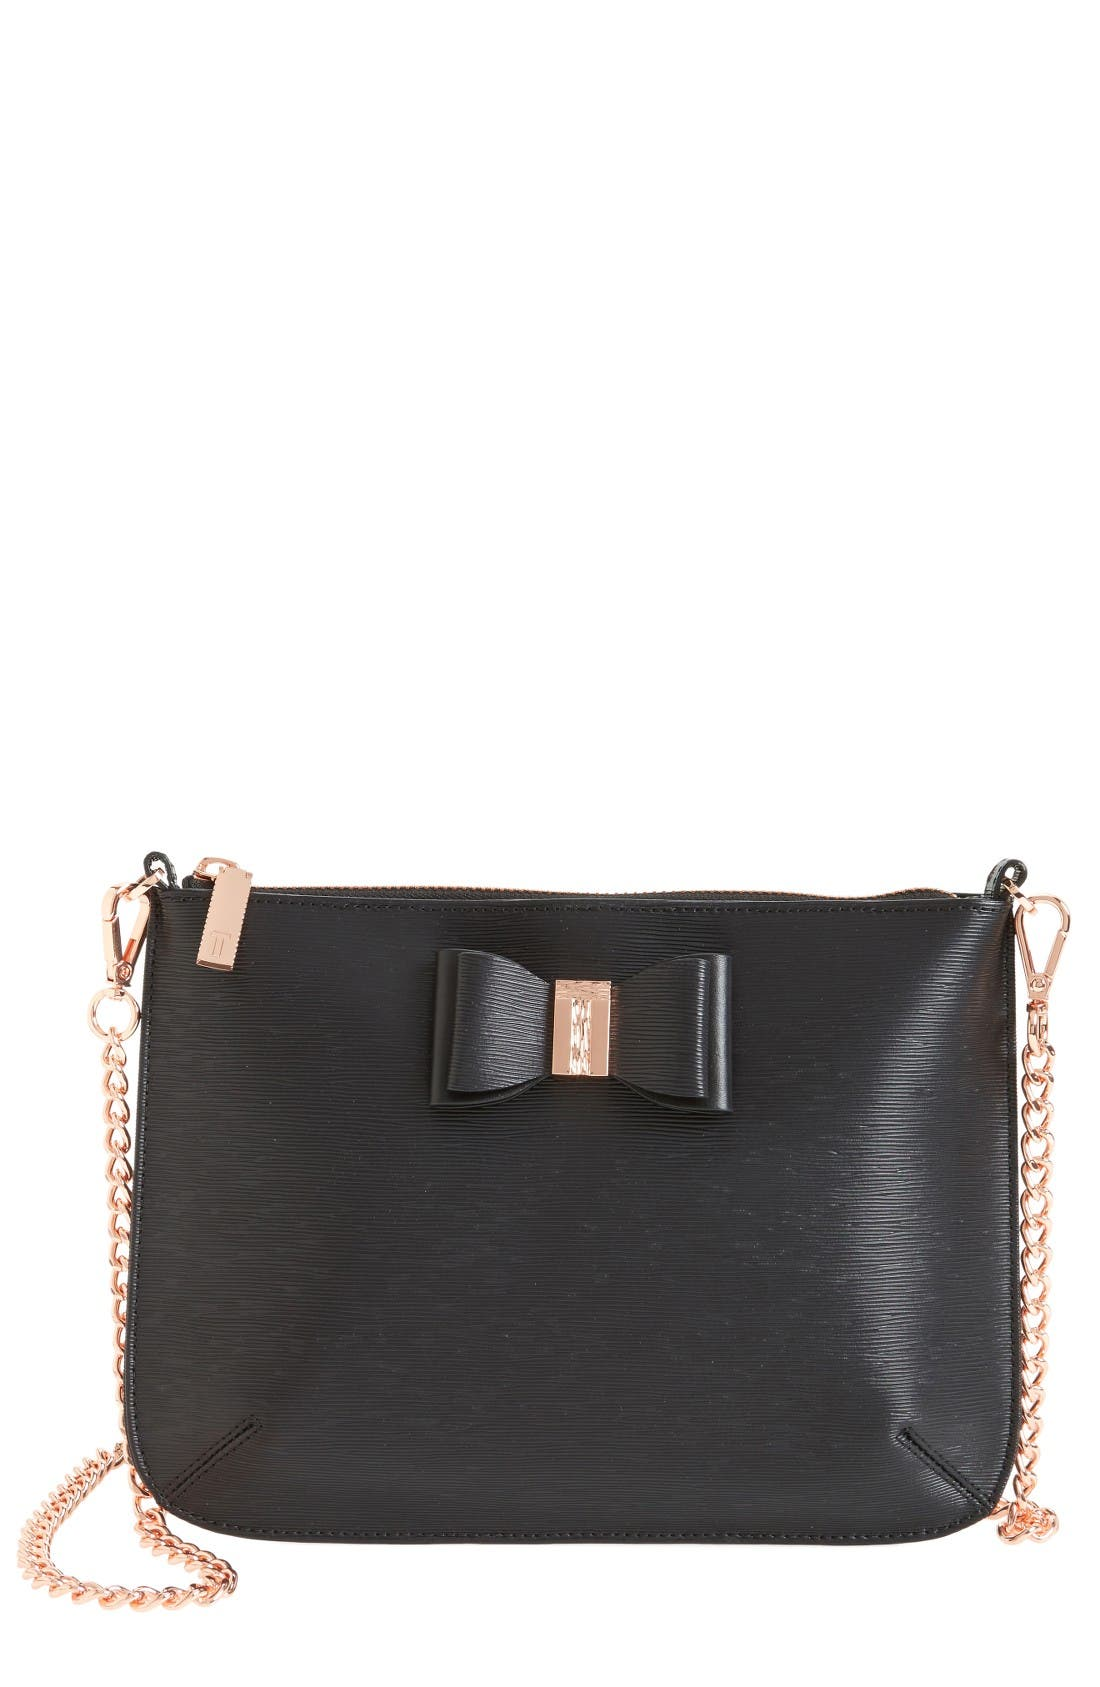 Alternate Image 1 Selected - Ted Baker London Caisey Small Leather Crossbody Bag